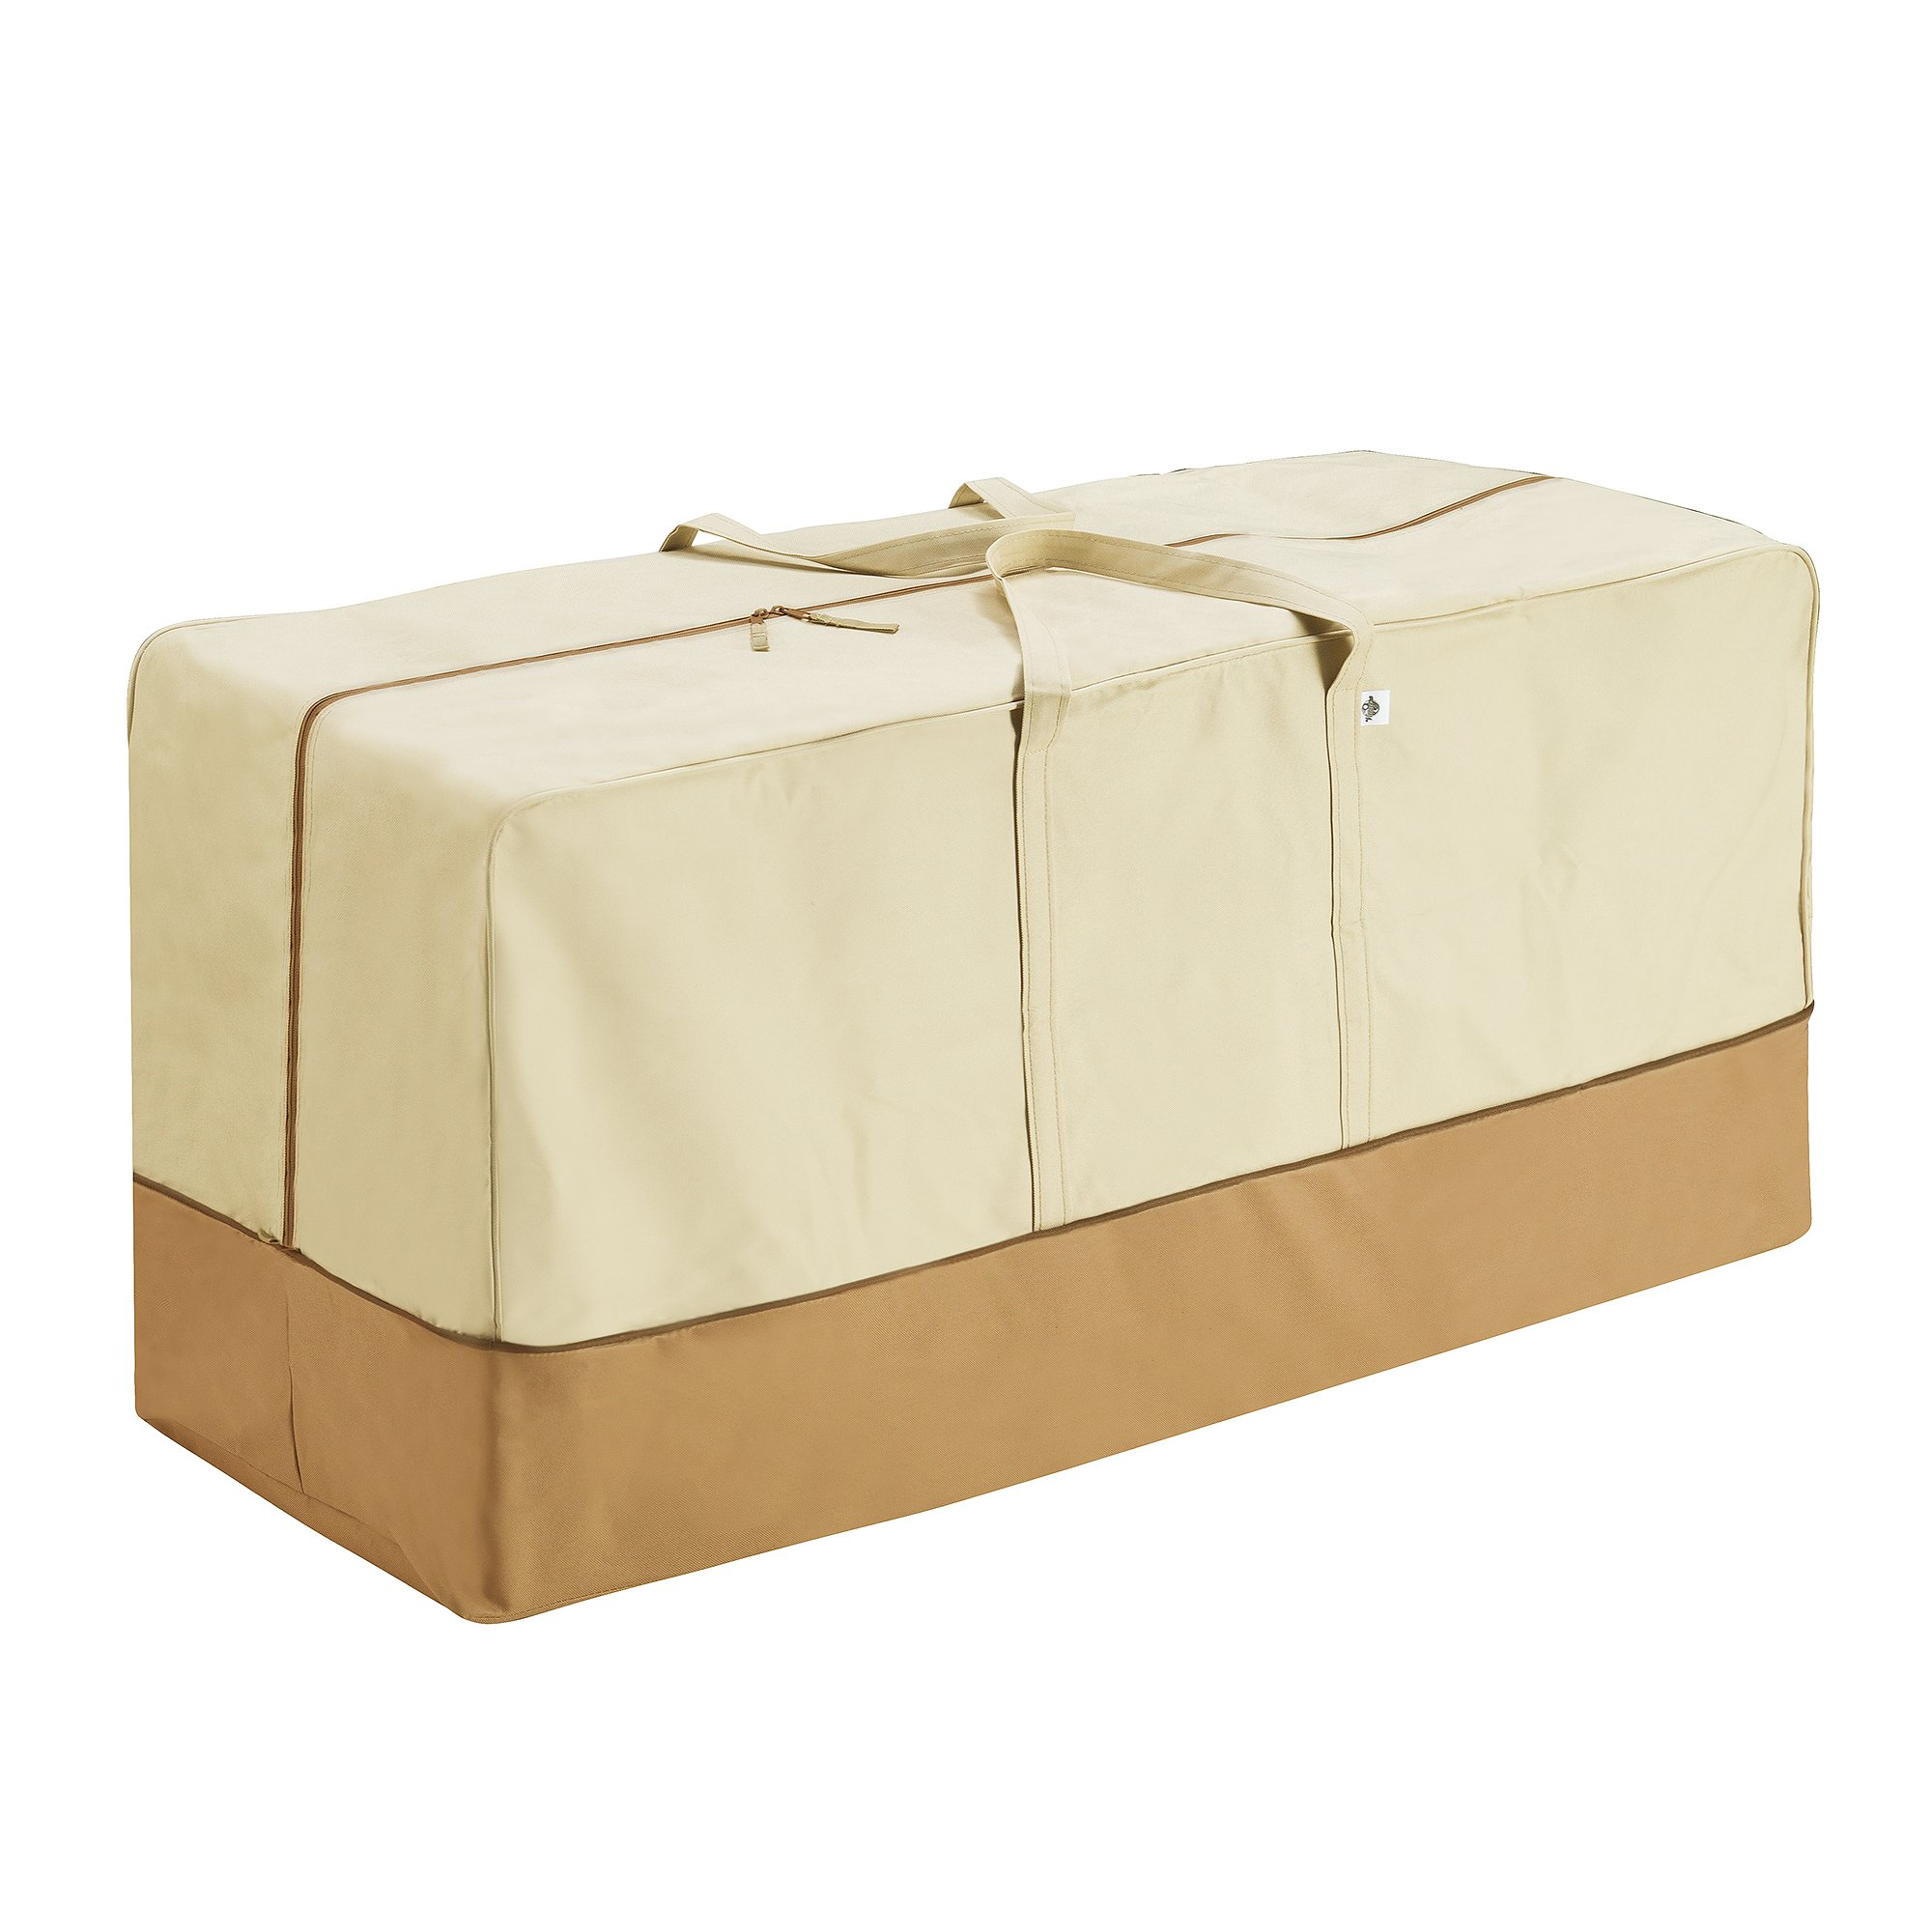 Villacera 83-DT5798 Patio Cushion Cover Bag, Beige and Brown